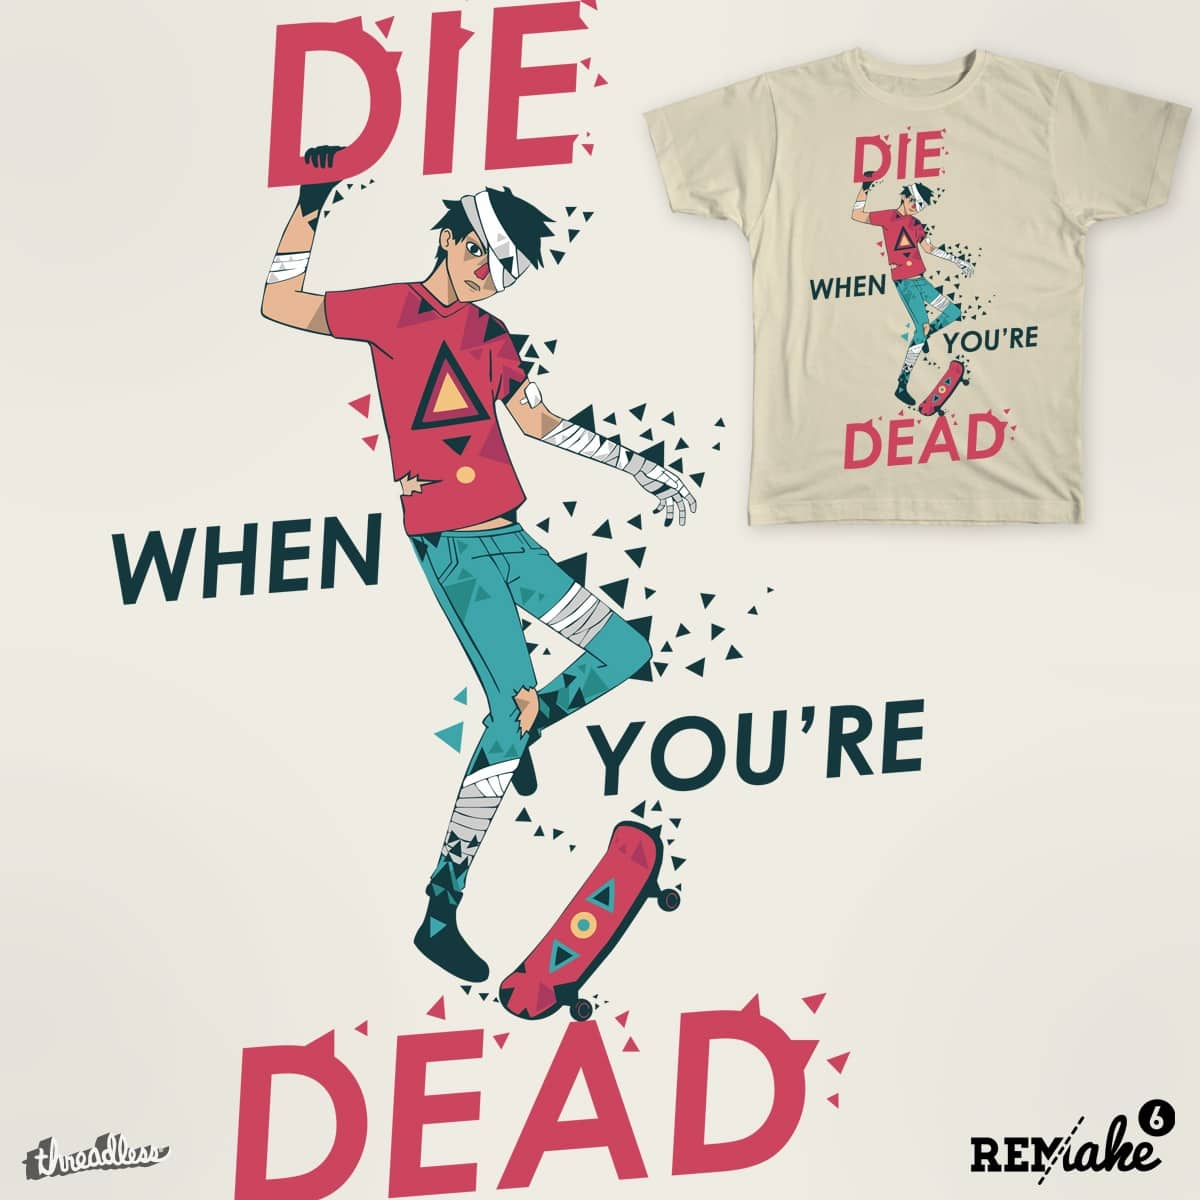 Die when you're dead by renji05 and mike bautista on Threadless